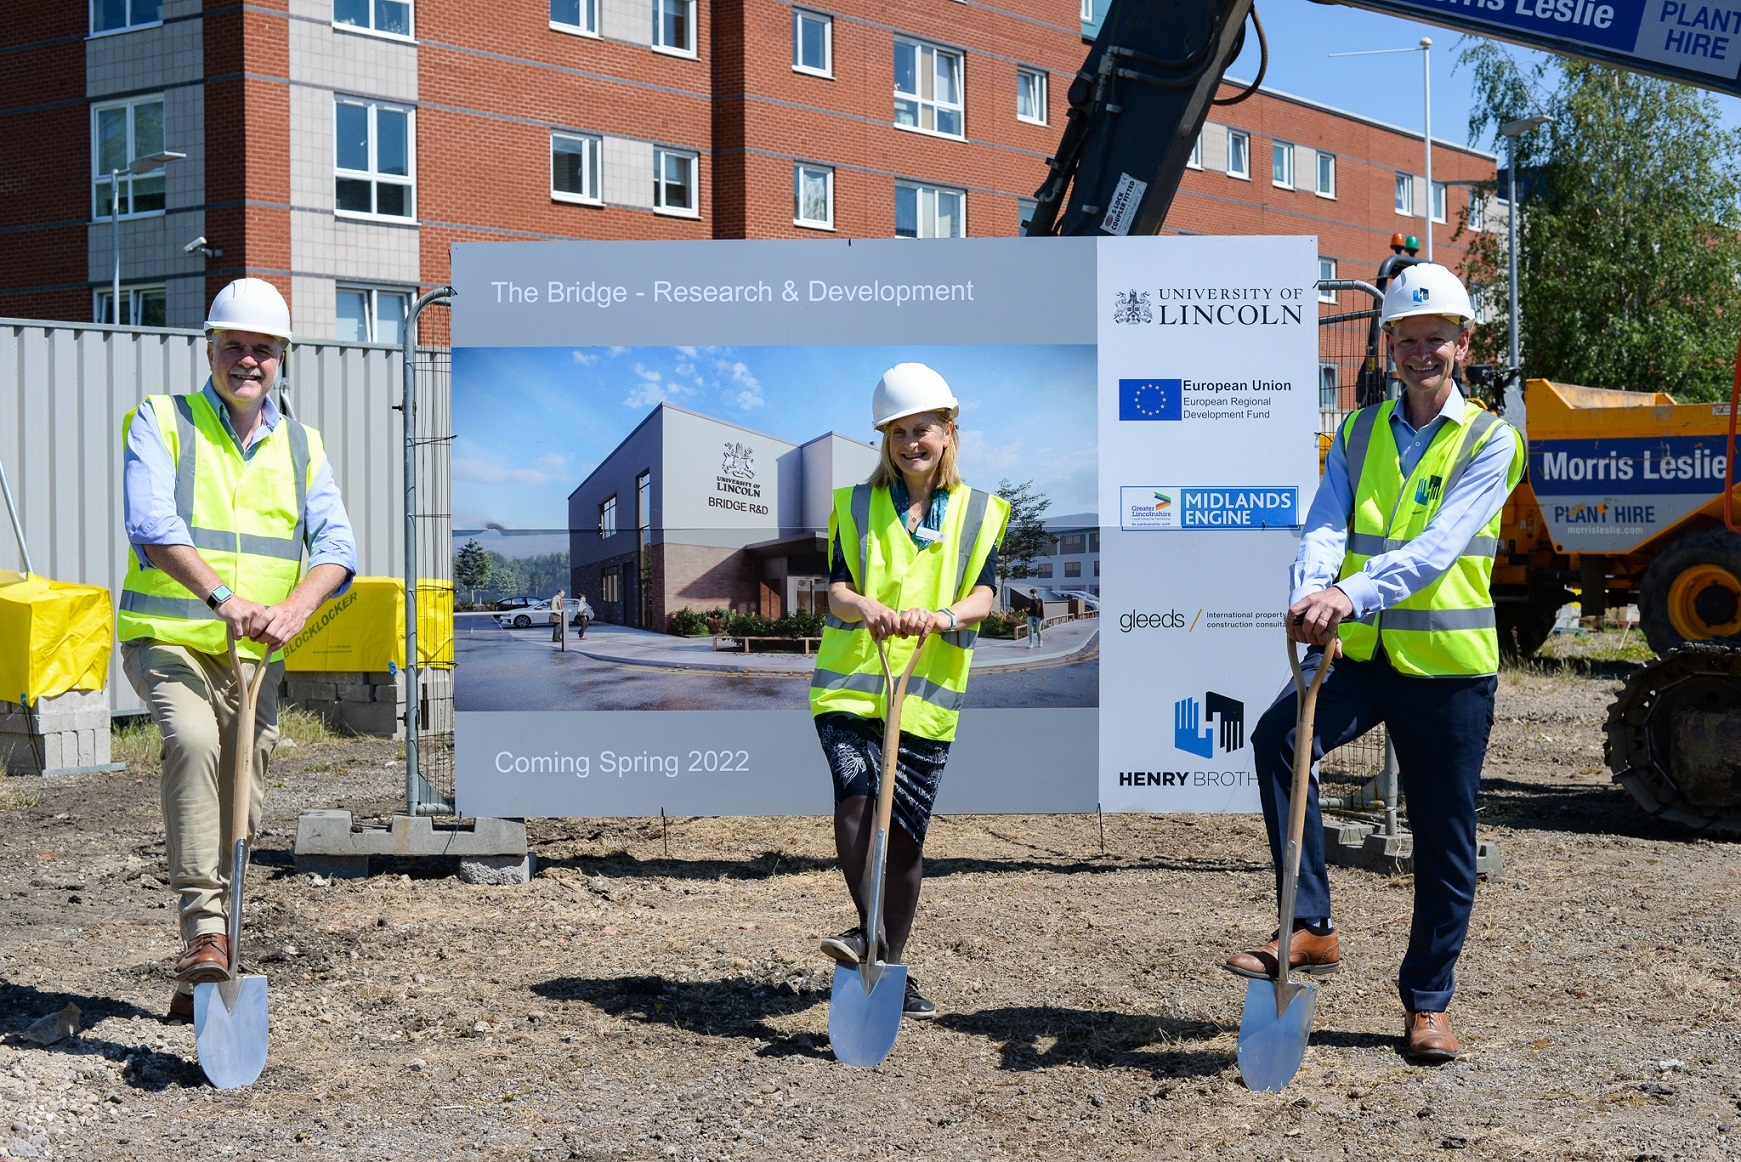 Henry Brothers breaks ground on new research facility at the University of Lincoln